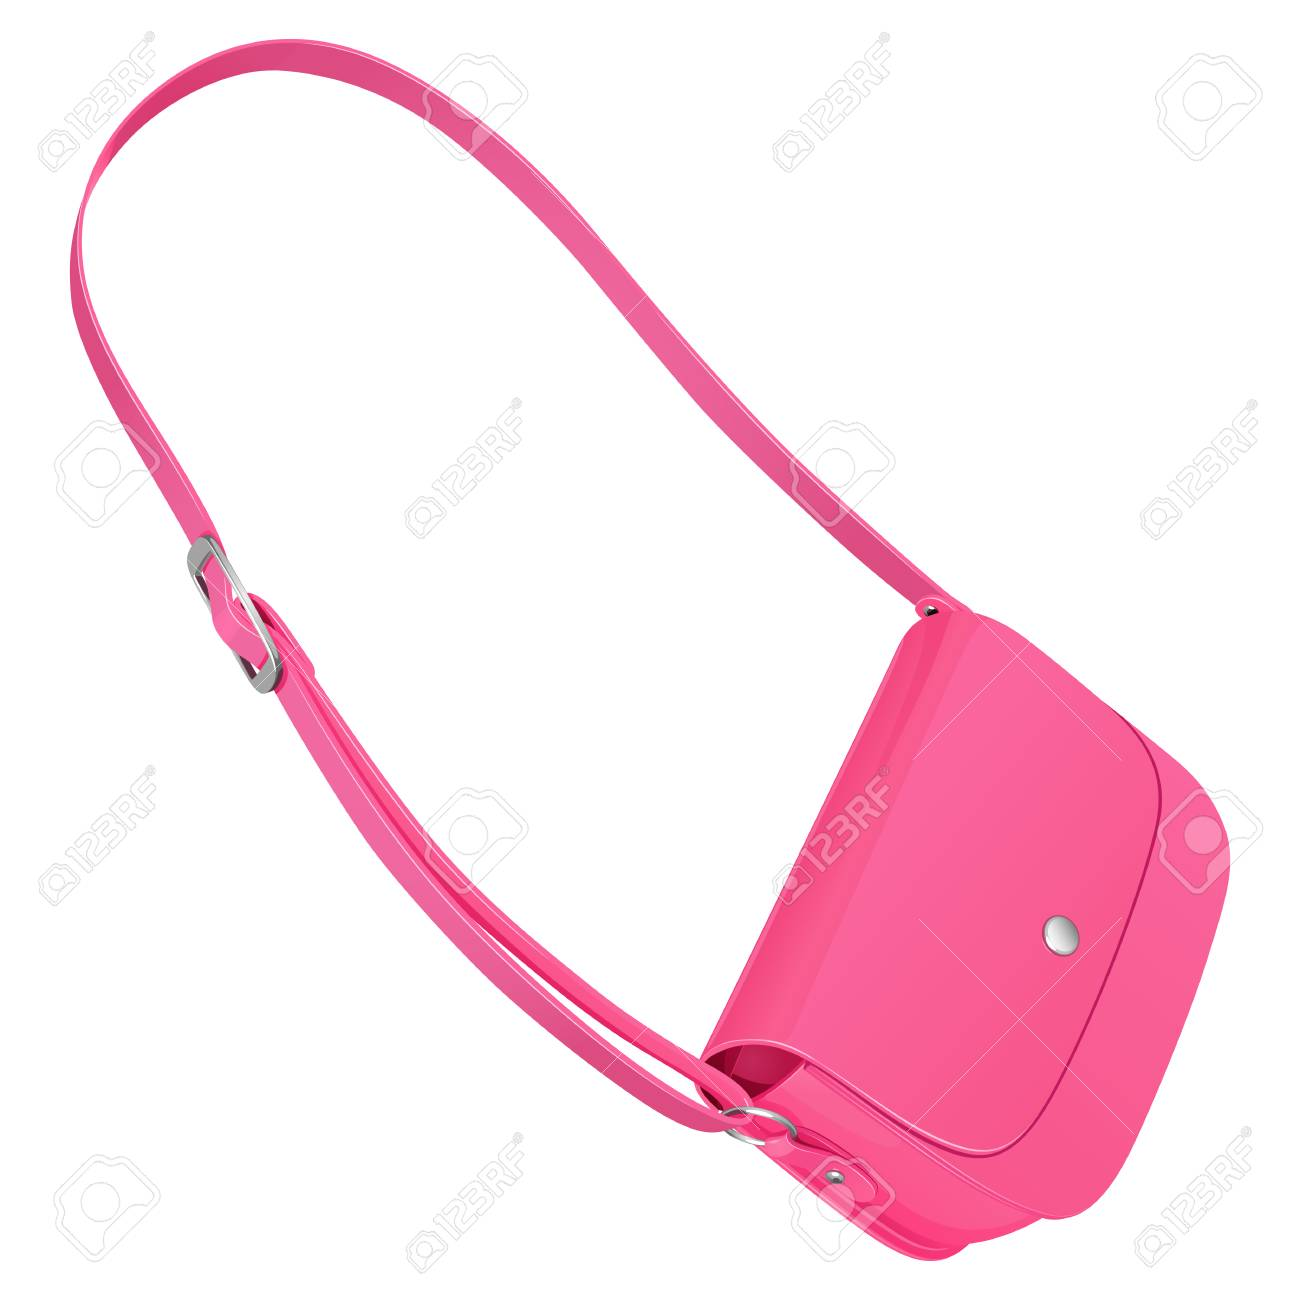 644d61b8cf7 Pink leather ladies bag with long belt isolated on white background